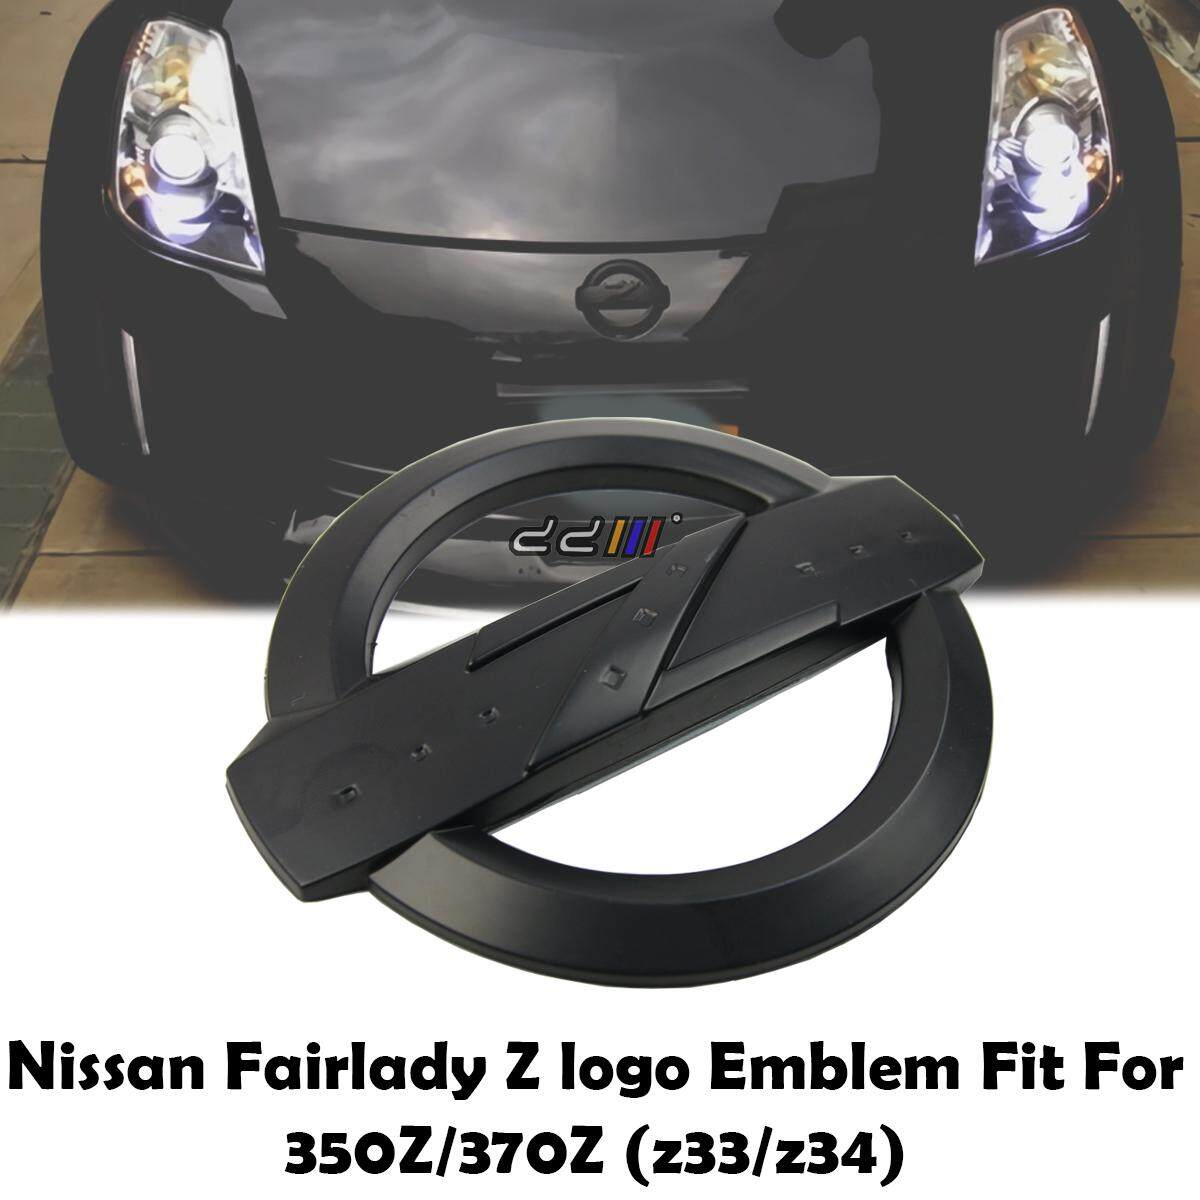 Jual Murah Tamiya 24254 1 24 Nissan 350z Track Fairlady Terbaru 2018 Tcash Vaganza 34 Qcy Q26 Mini Bluetooth Earphone Wireless Stealth Earbuds W Mic Black Sell Nv200 Z Cheapest Best Quality My Store